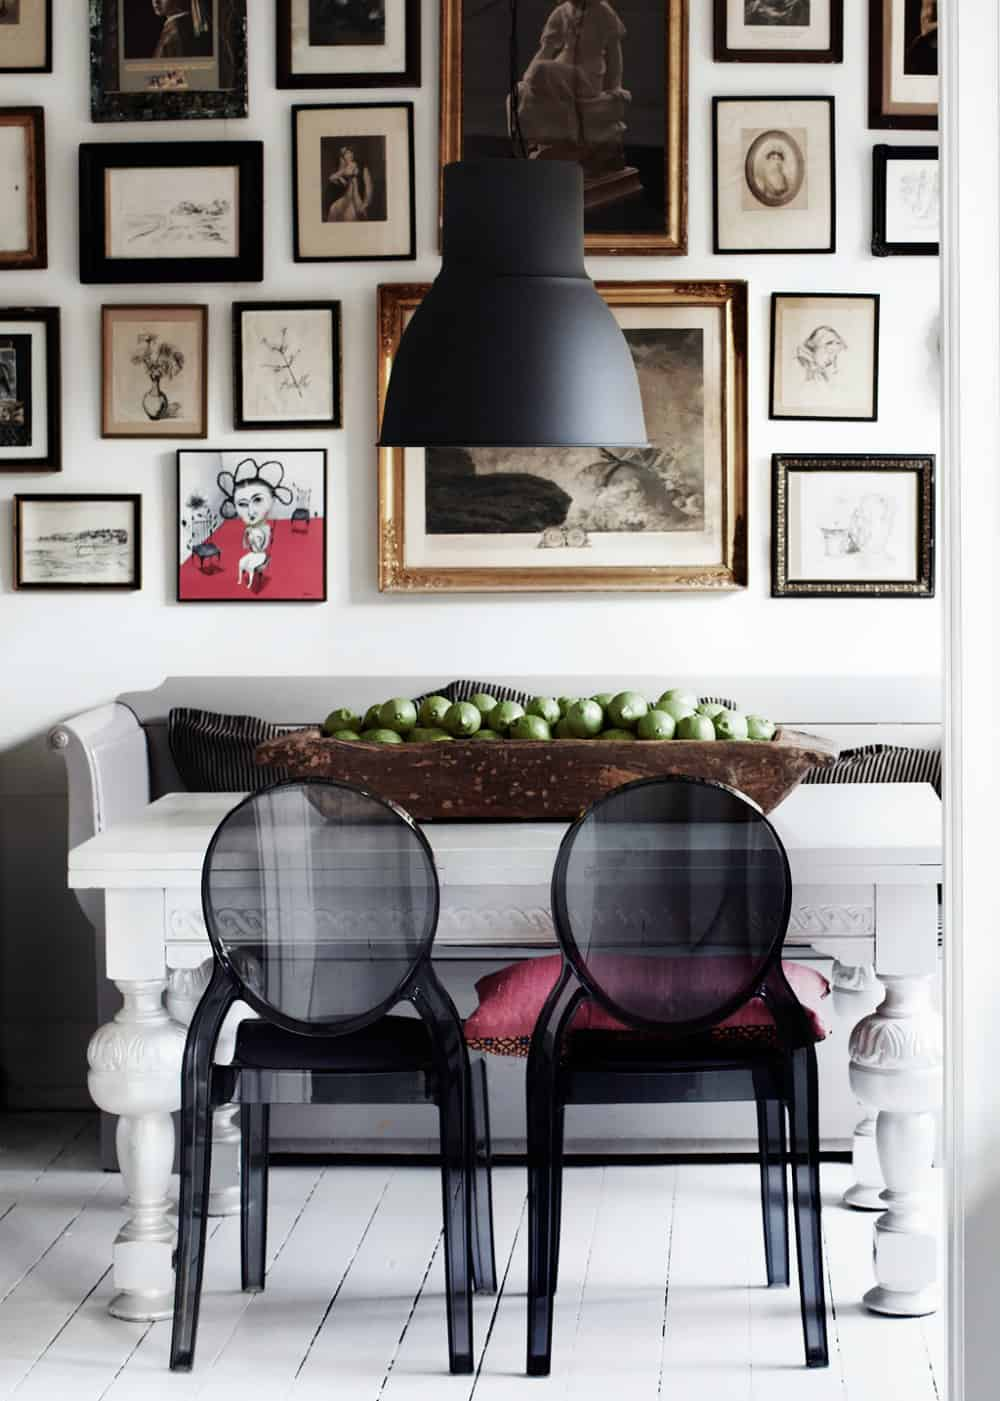 Sofa bench in an eclectic dining room